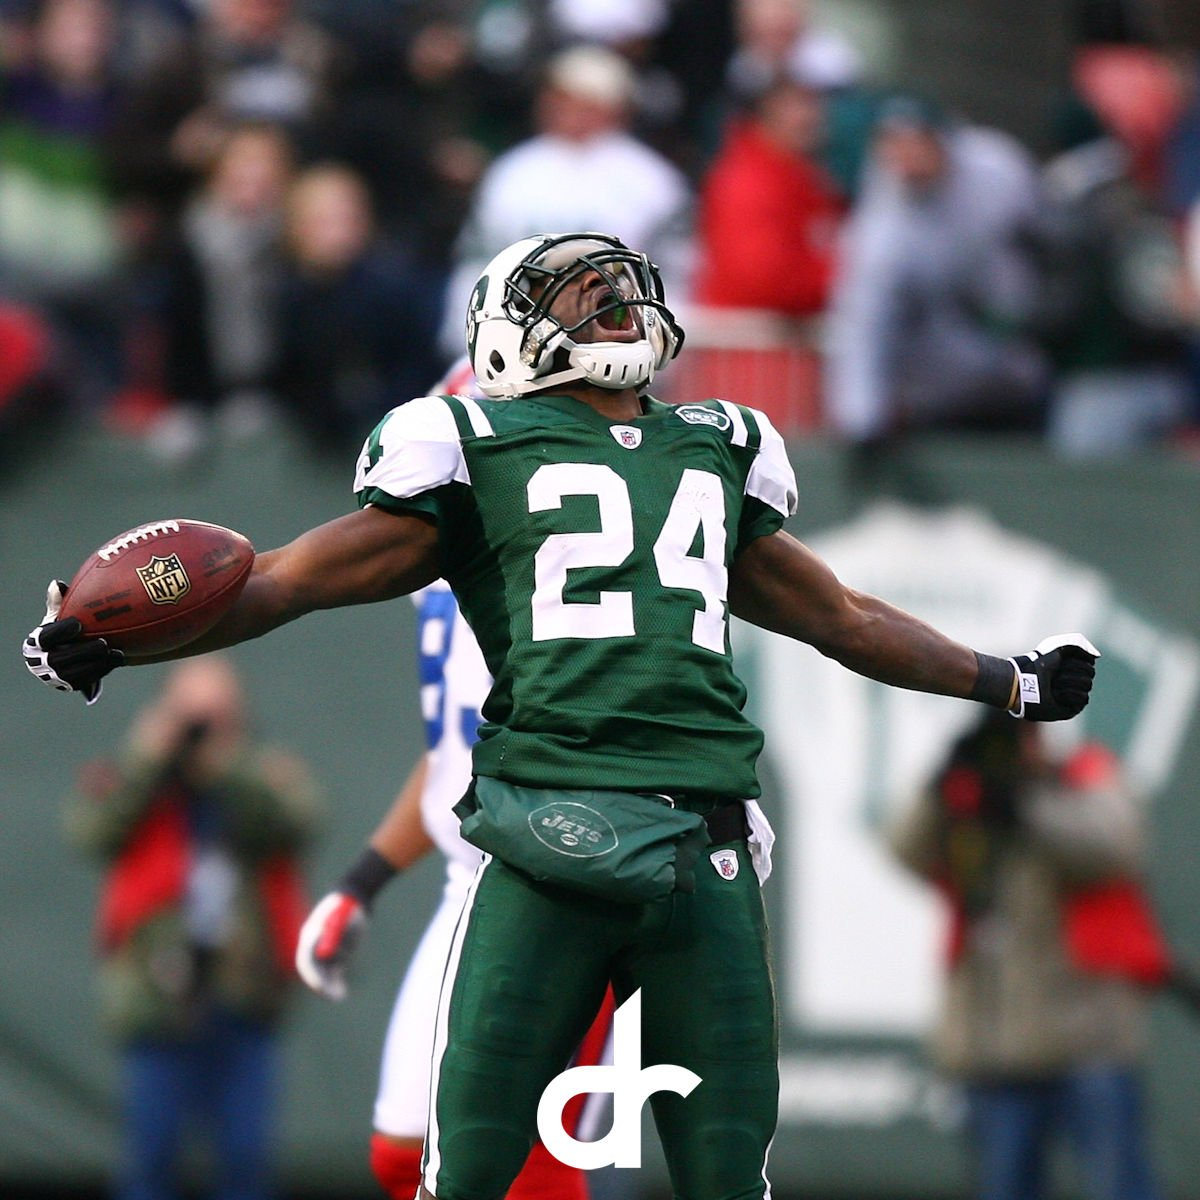 Heading into the weekend like... #fridaymood #revisisland #darrellerevis